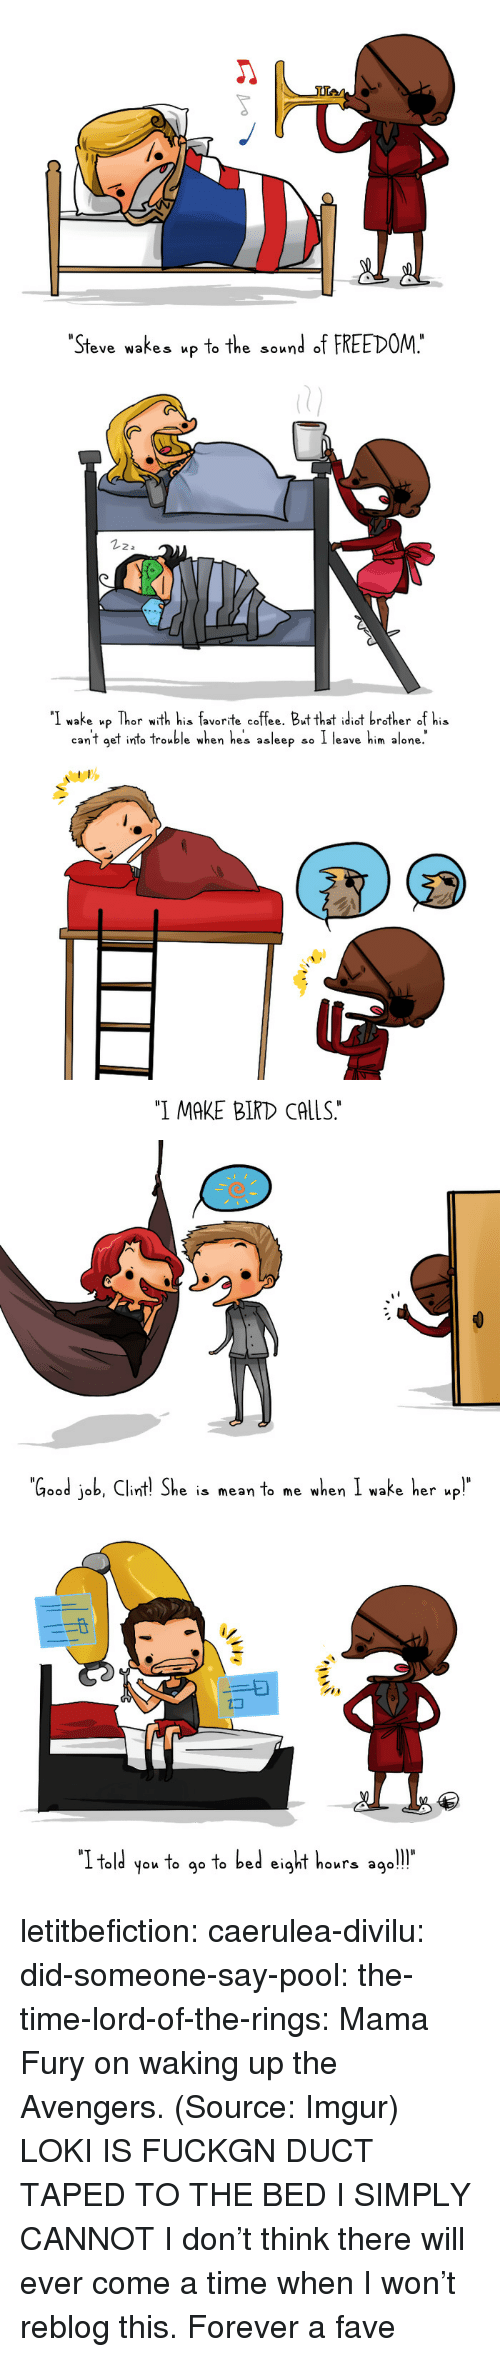 """Being Alone, Target, and Tumblr: """"Steve wakes upto the sound  FREEDOM.""""   22a  I wake up Thor with his favorite coffee. Butthat idiot brother of his  can't get int° trouble when he's asleep so I leave him alone.   """"I MAKE BIRD CALS   Good job, Clnt She is mean to me when I wake he   old you To g° To bed eighT hours ago! letitbefiction: caerulea-divilu:  did-someone-say-pool:  the-time-lord-of-the-rings:  Mama Fury on waking up the Avengers. (Source: Imgur)  LOKI IS FUCKGN DUCT TAPED TO THE BED I SIMPLY CANNOT  I don't think there will ever come a time when I won't reblog this.   Forever a fave"""